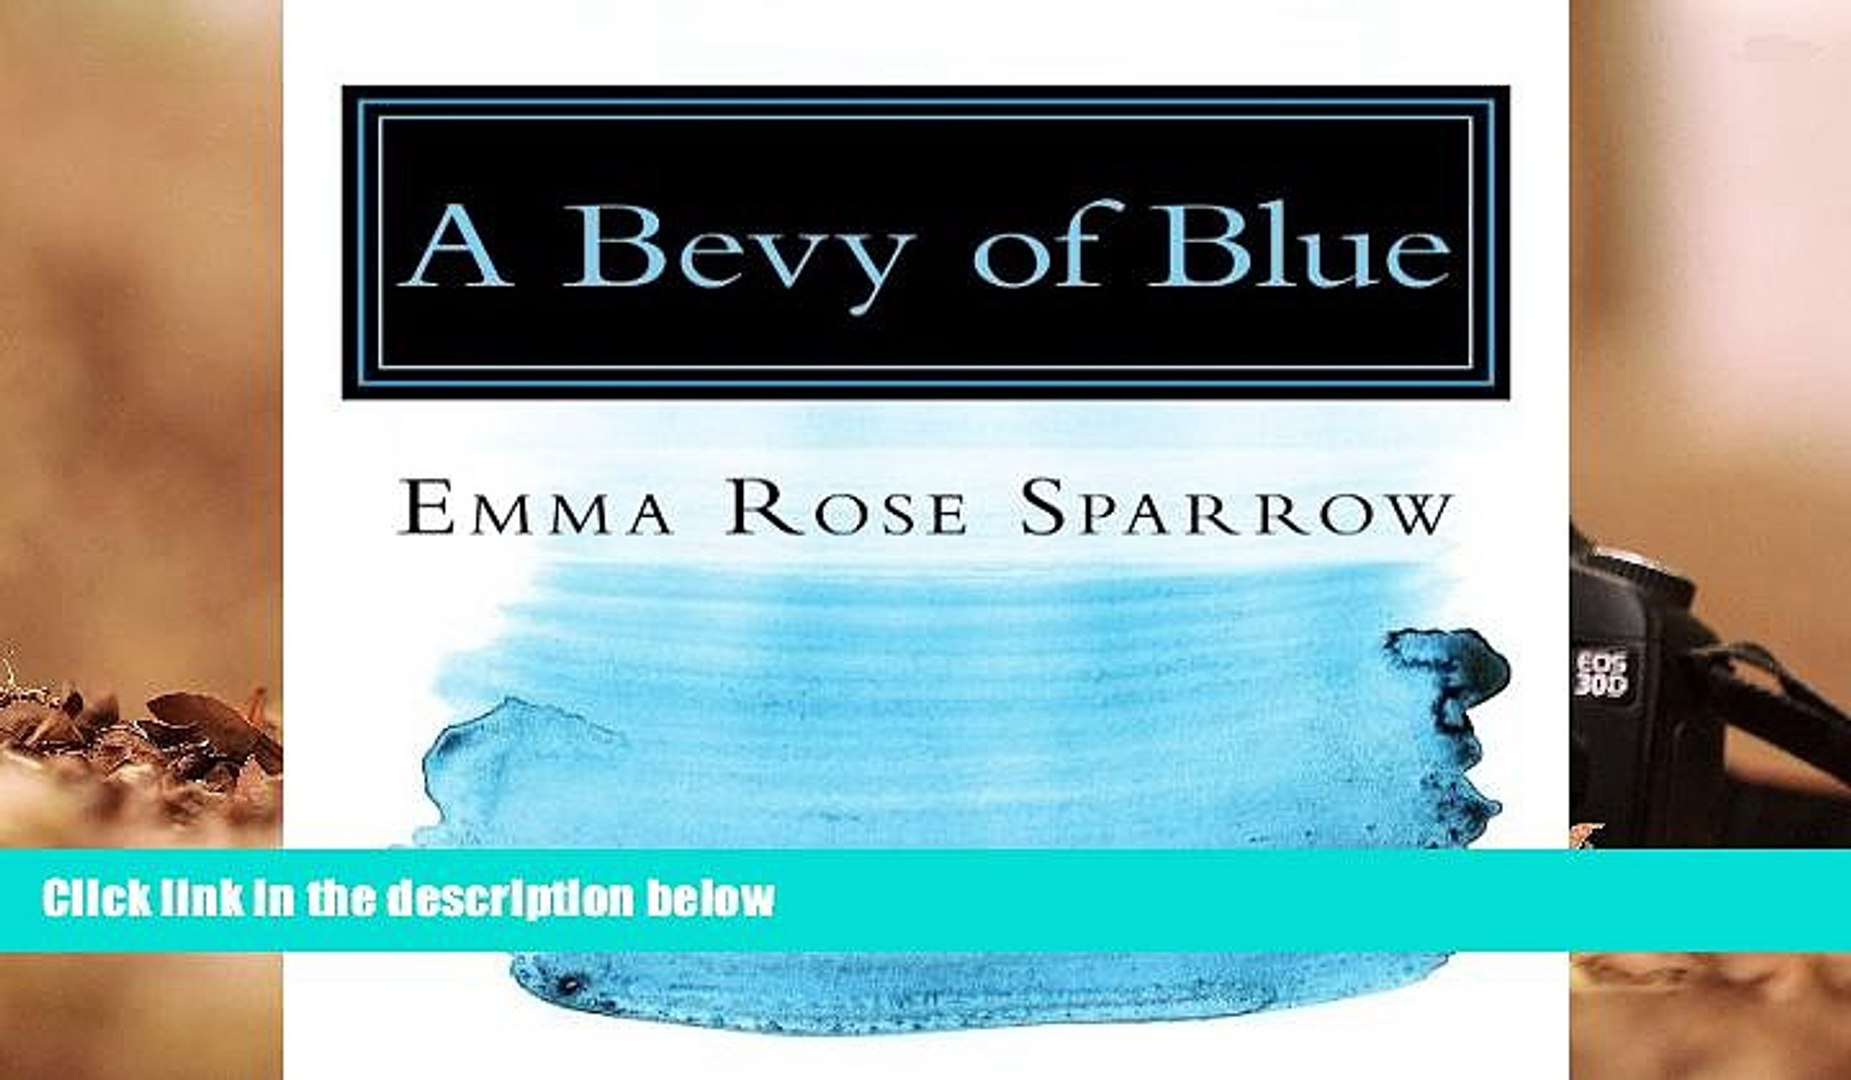 Read Online A Bevy of Blue: Picture Book for Dementia Patients (L2) (Volume 2) Emma Rose Sparrow